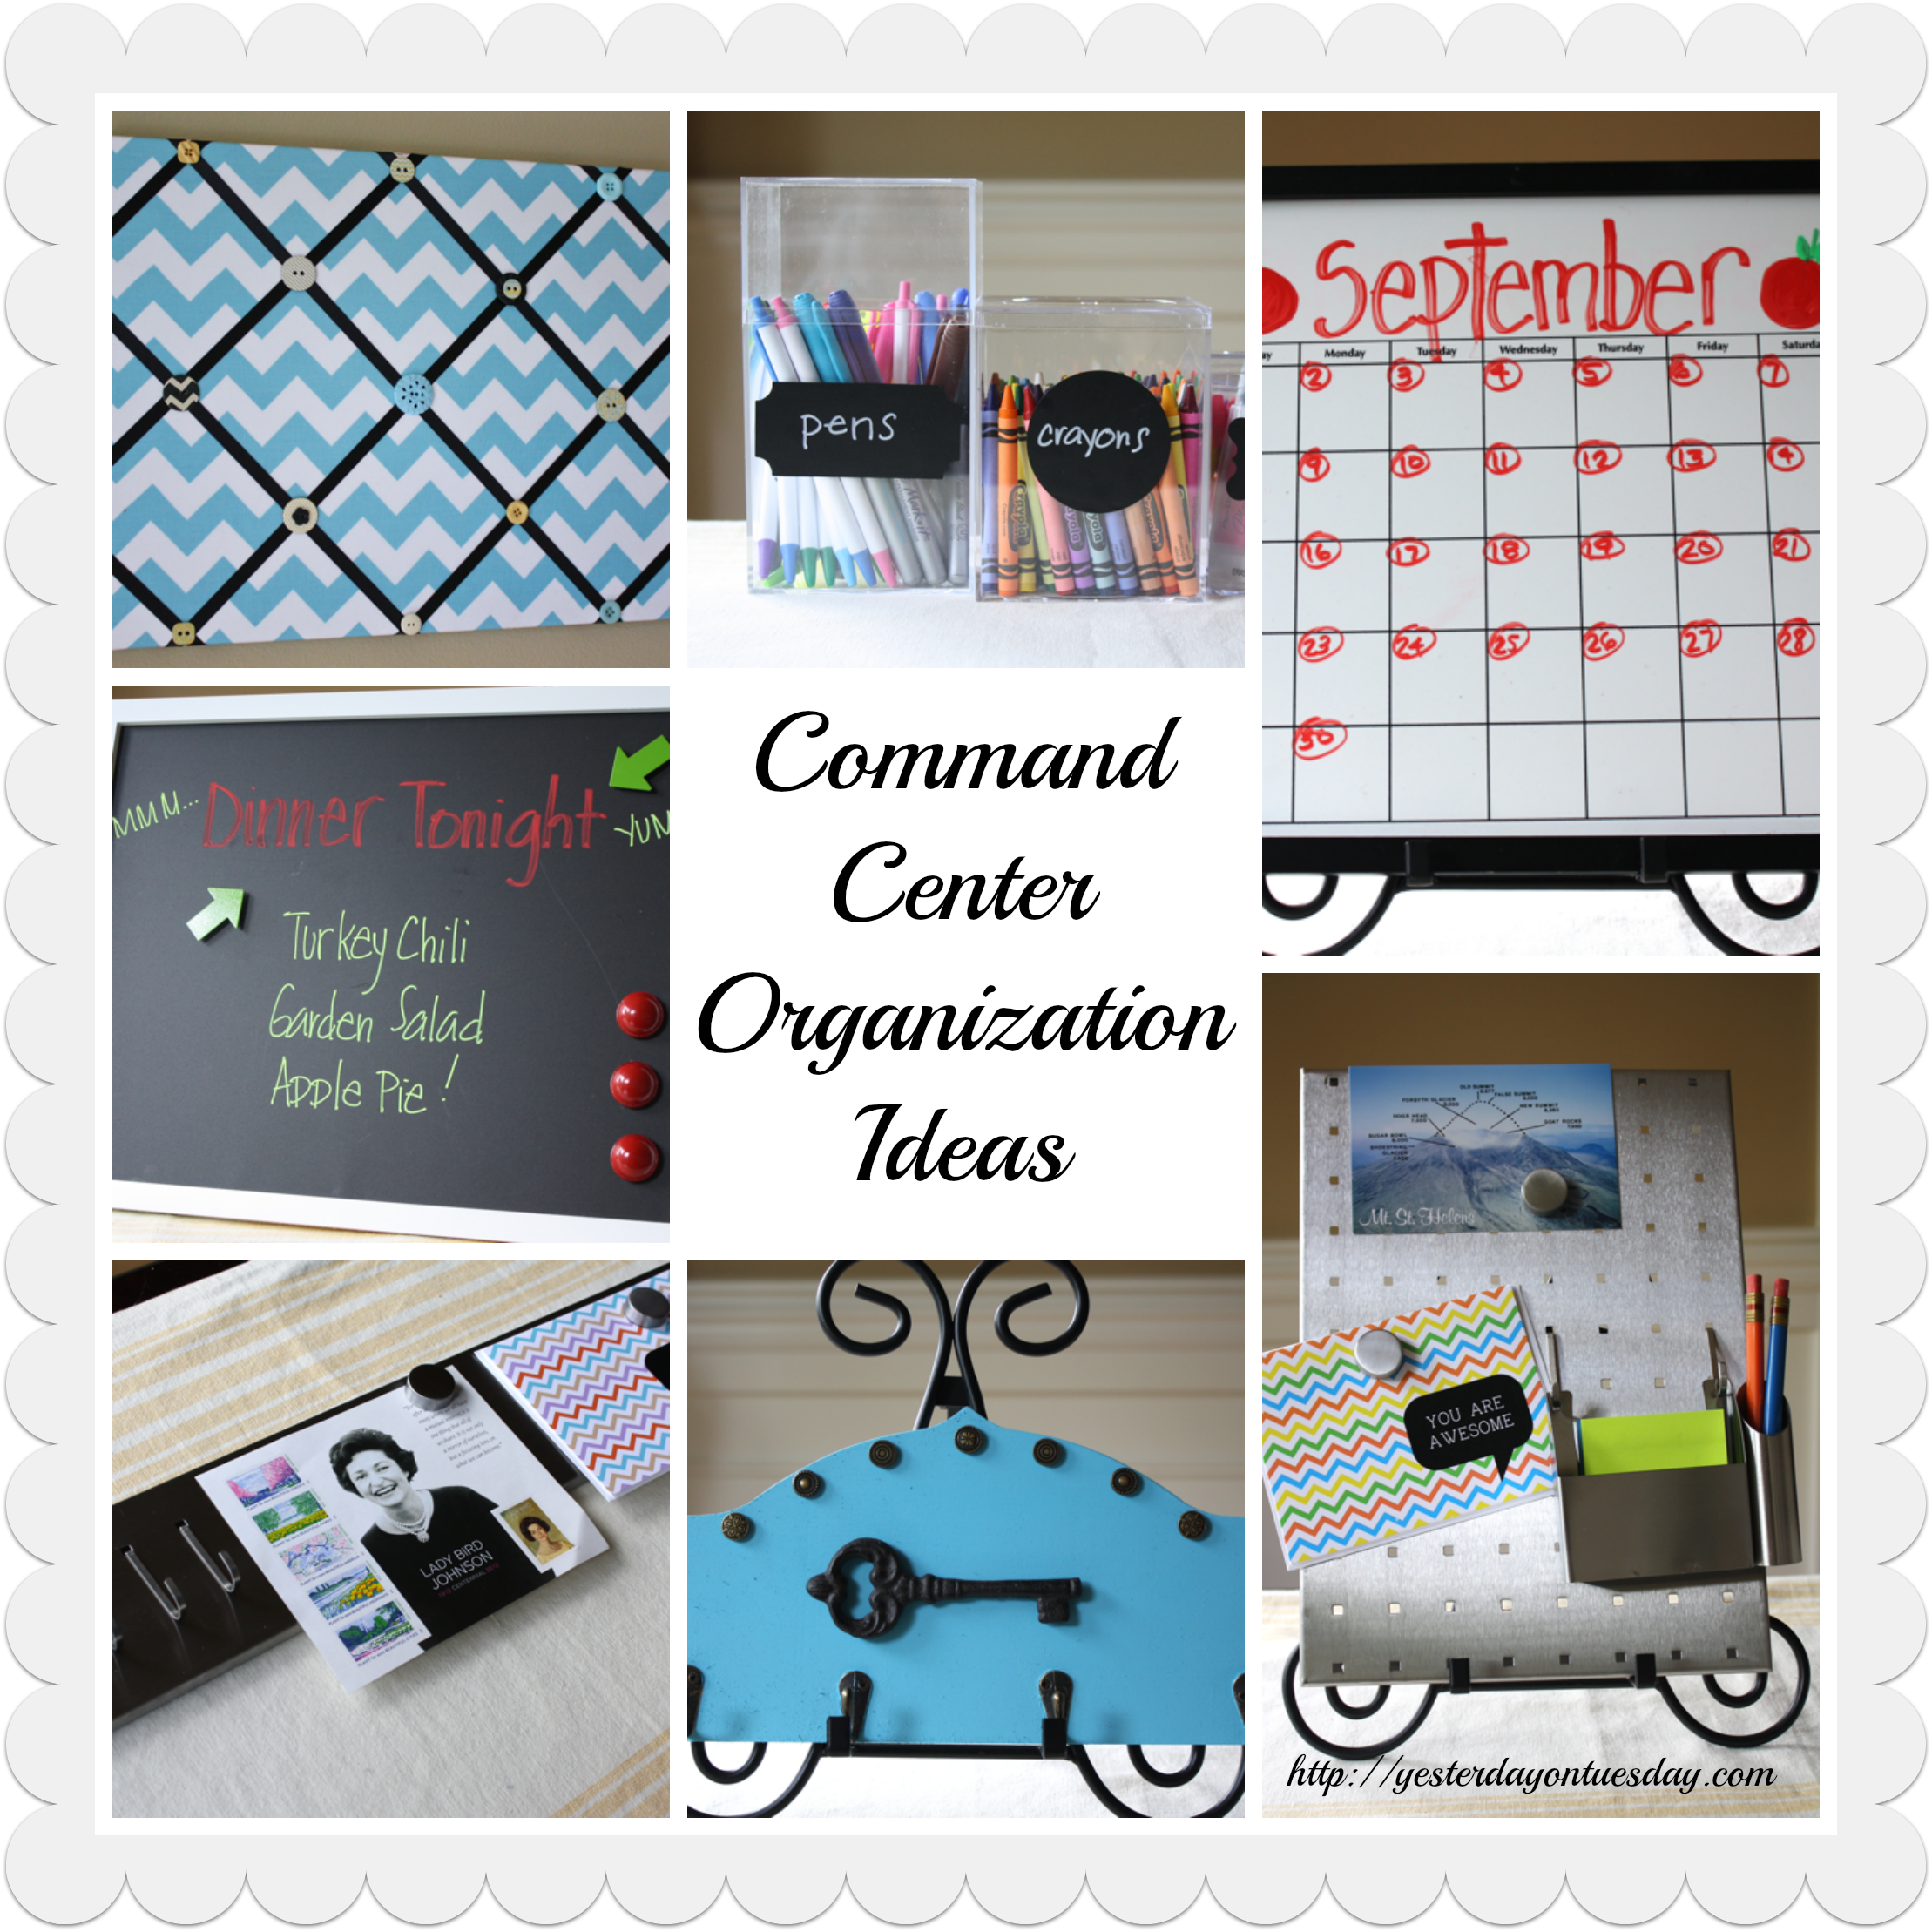 Command Center Organization Ideas | Yesterday On Tuesday